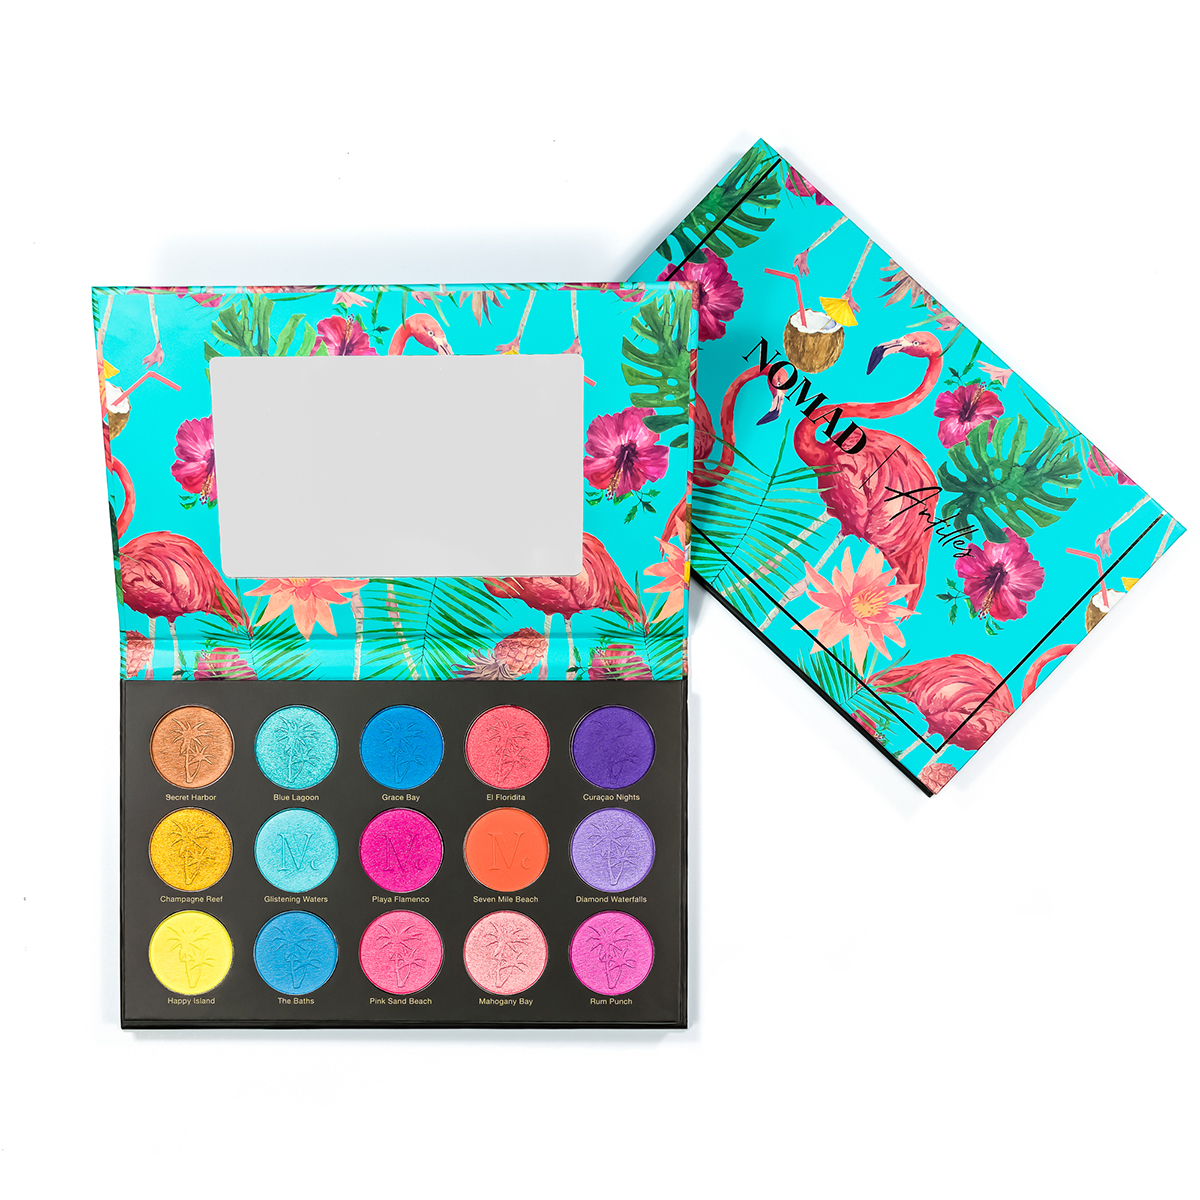 The Antilles Palette was inspired by the beautiful colors of the Caribbean.